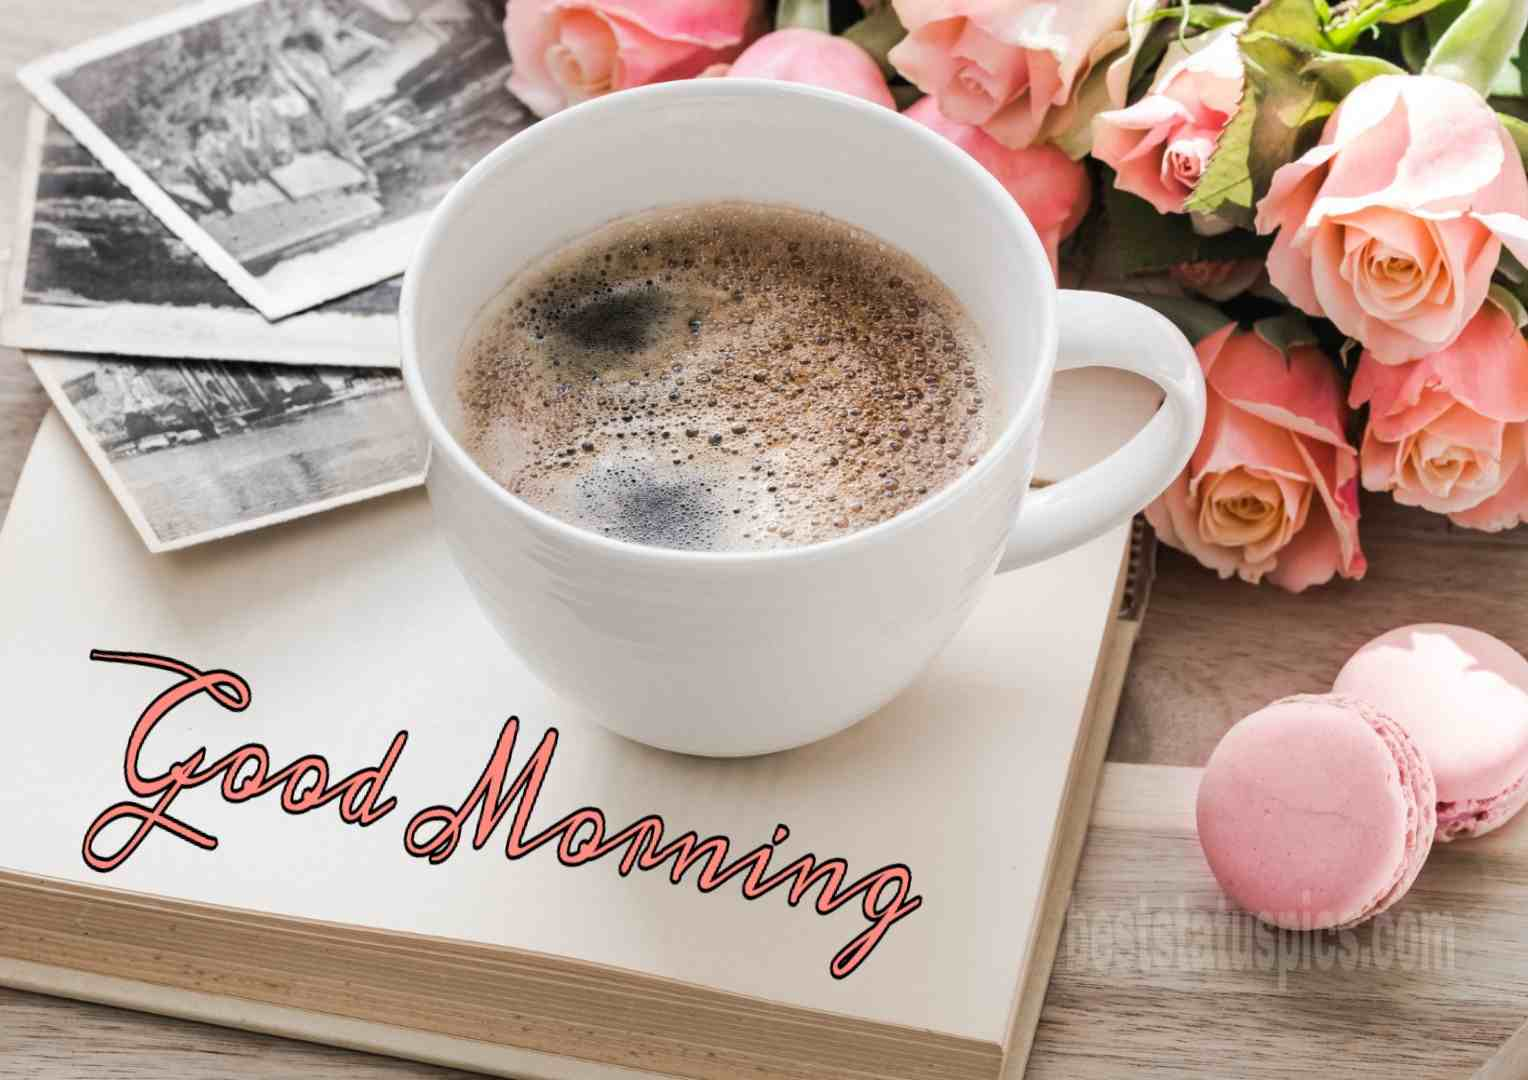 whatsapp dp good morning gm coffee with pink rose flowers